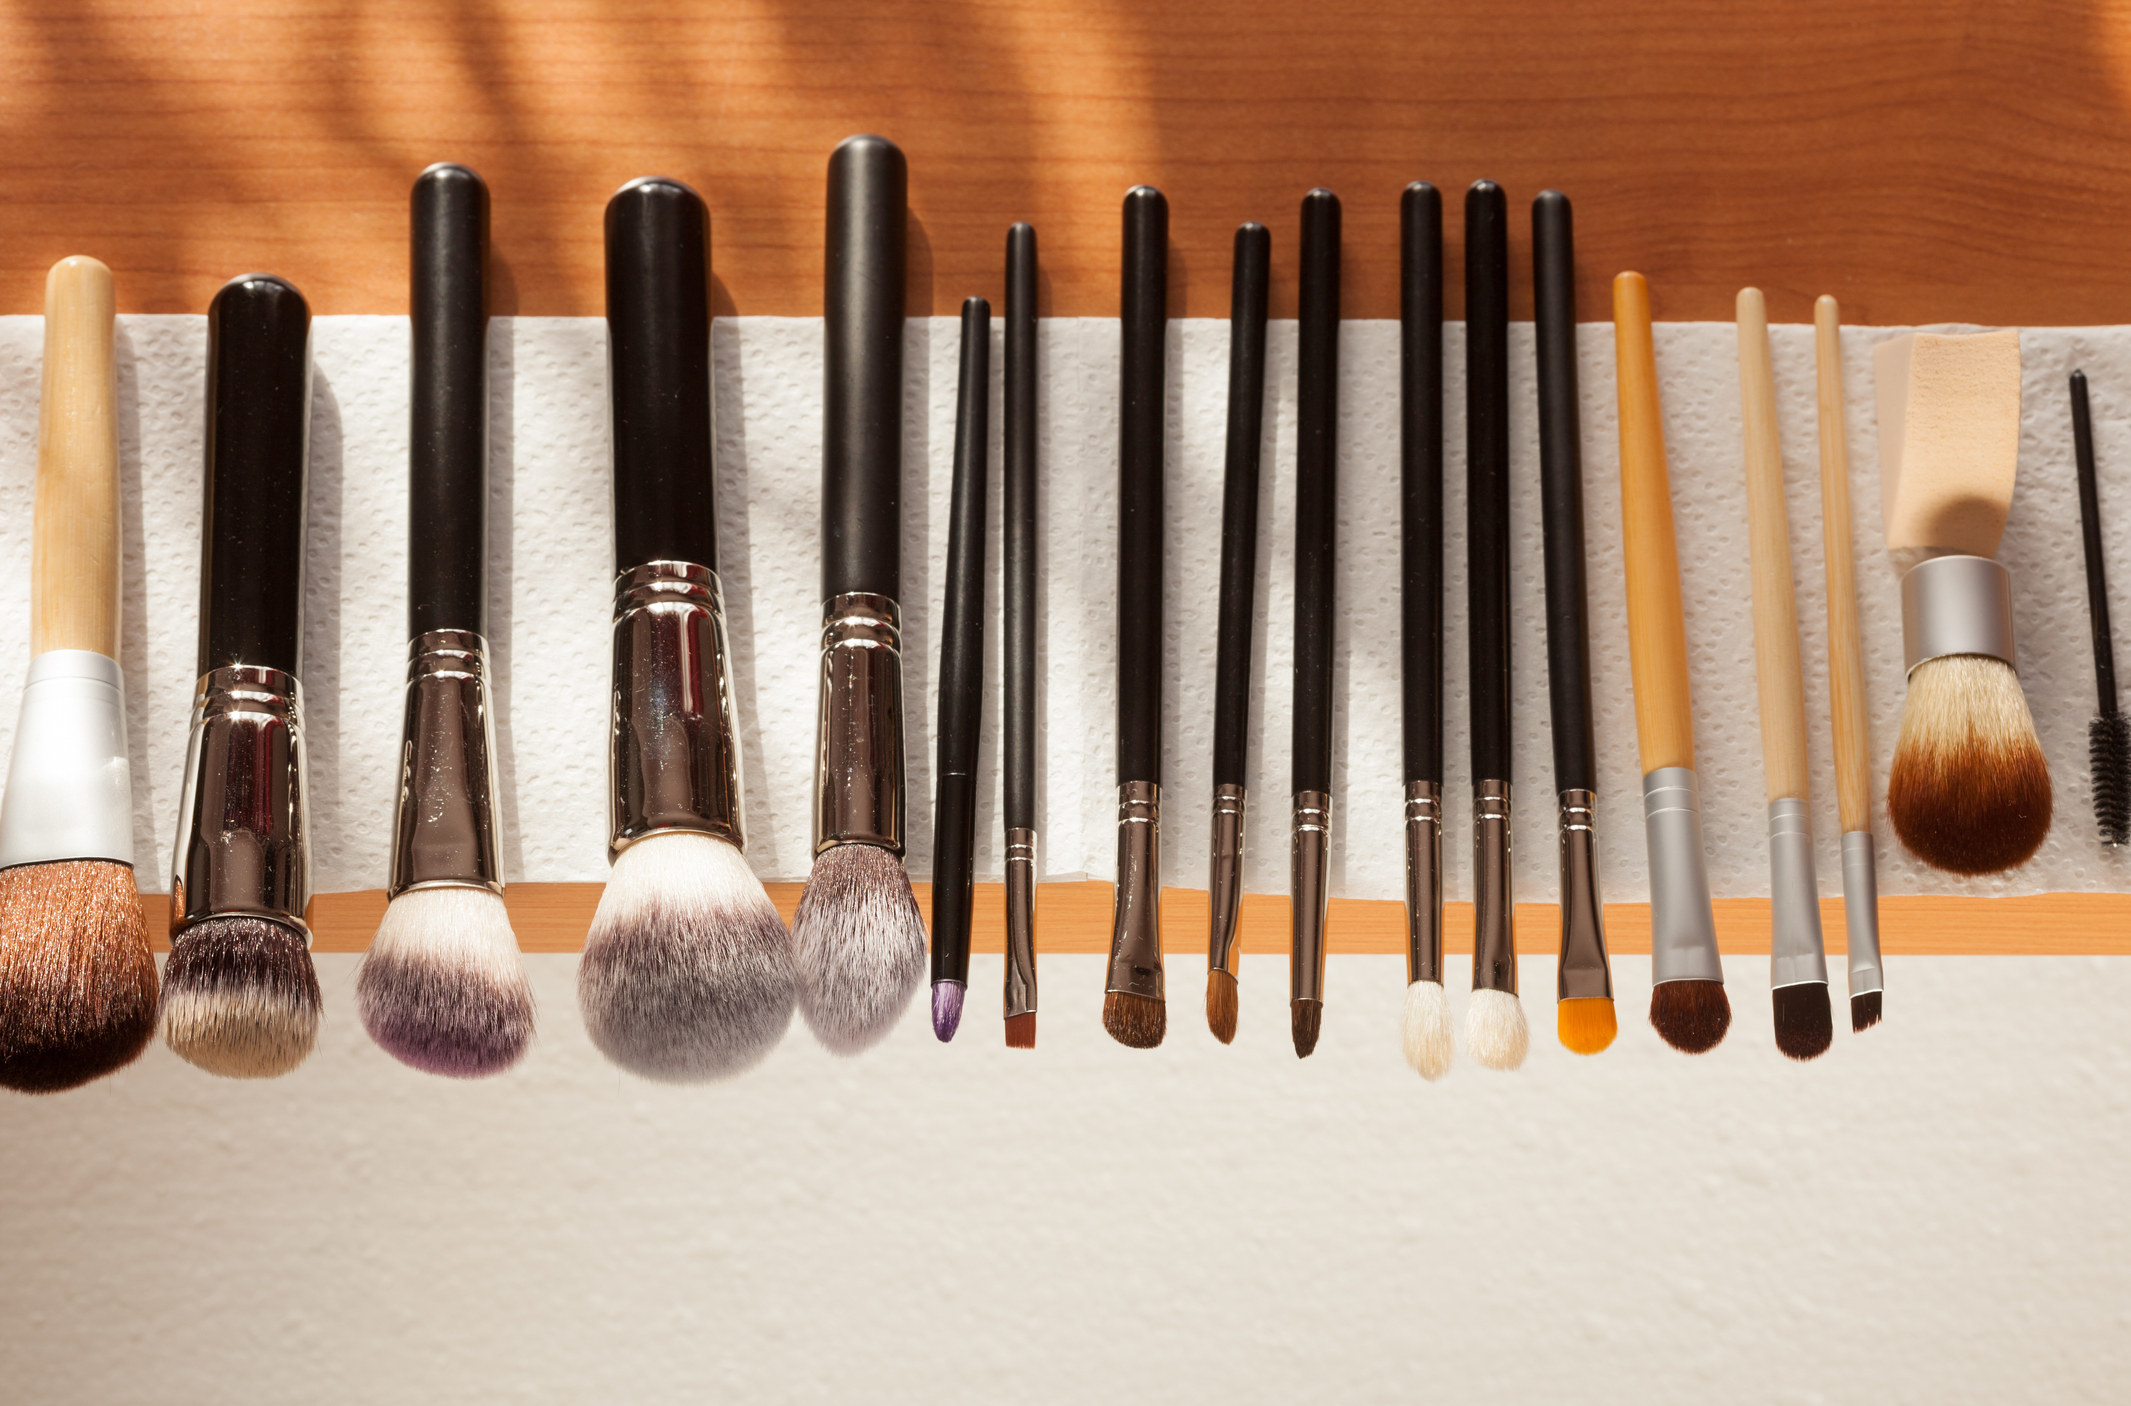 photo showing a row of cosmetic brushes that are being dried off on top of white piece of napkin after being cleaned